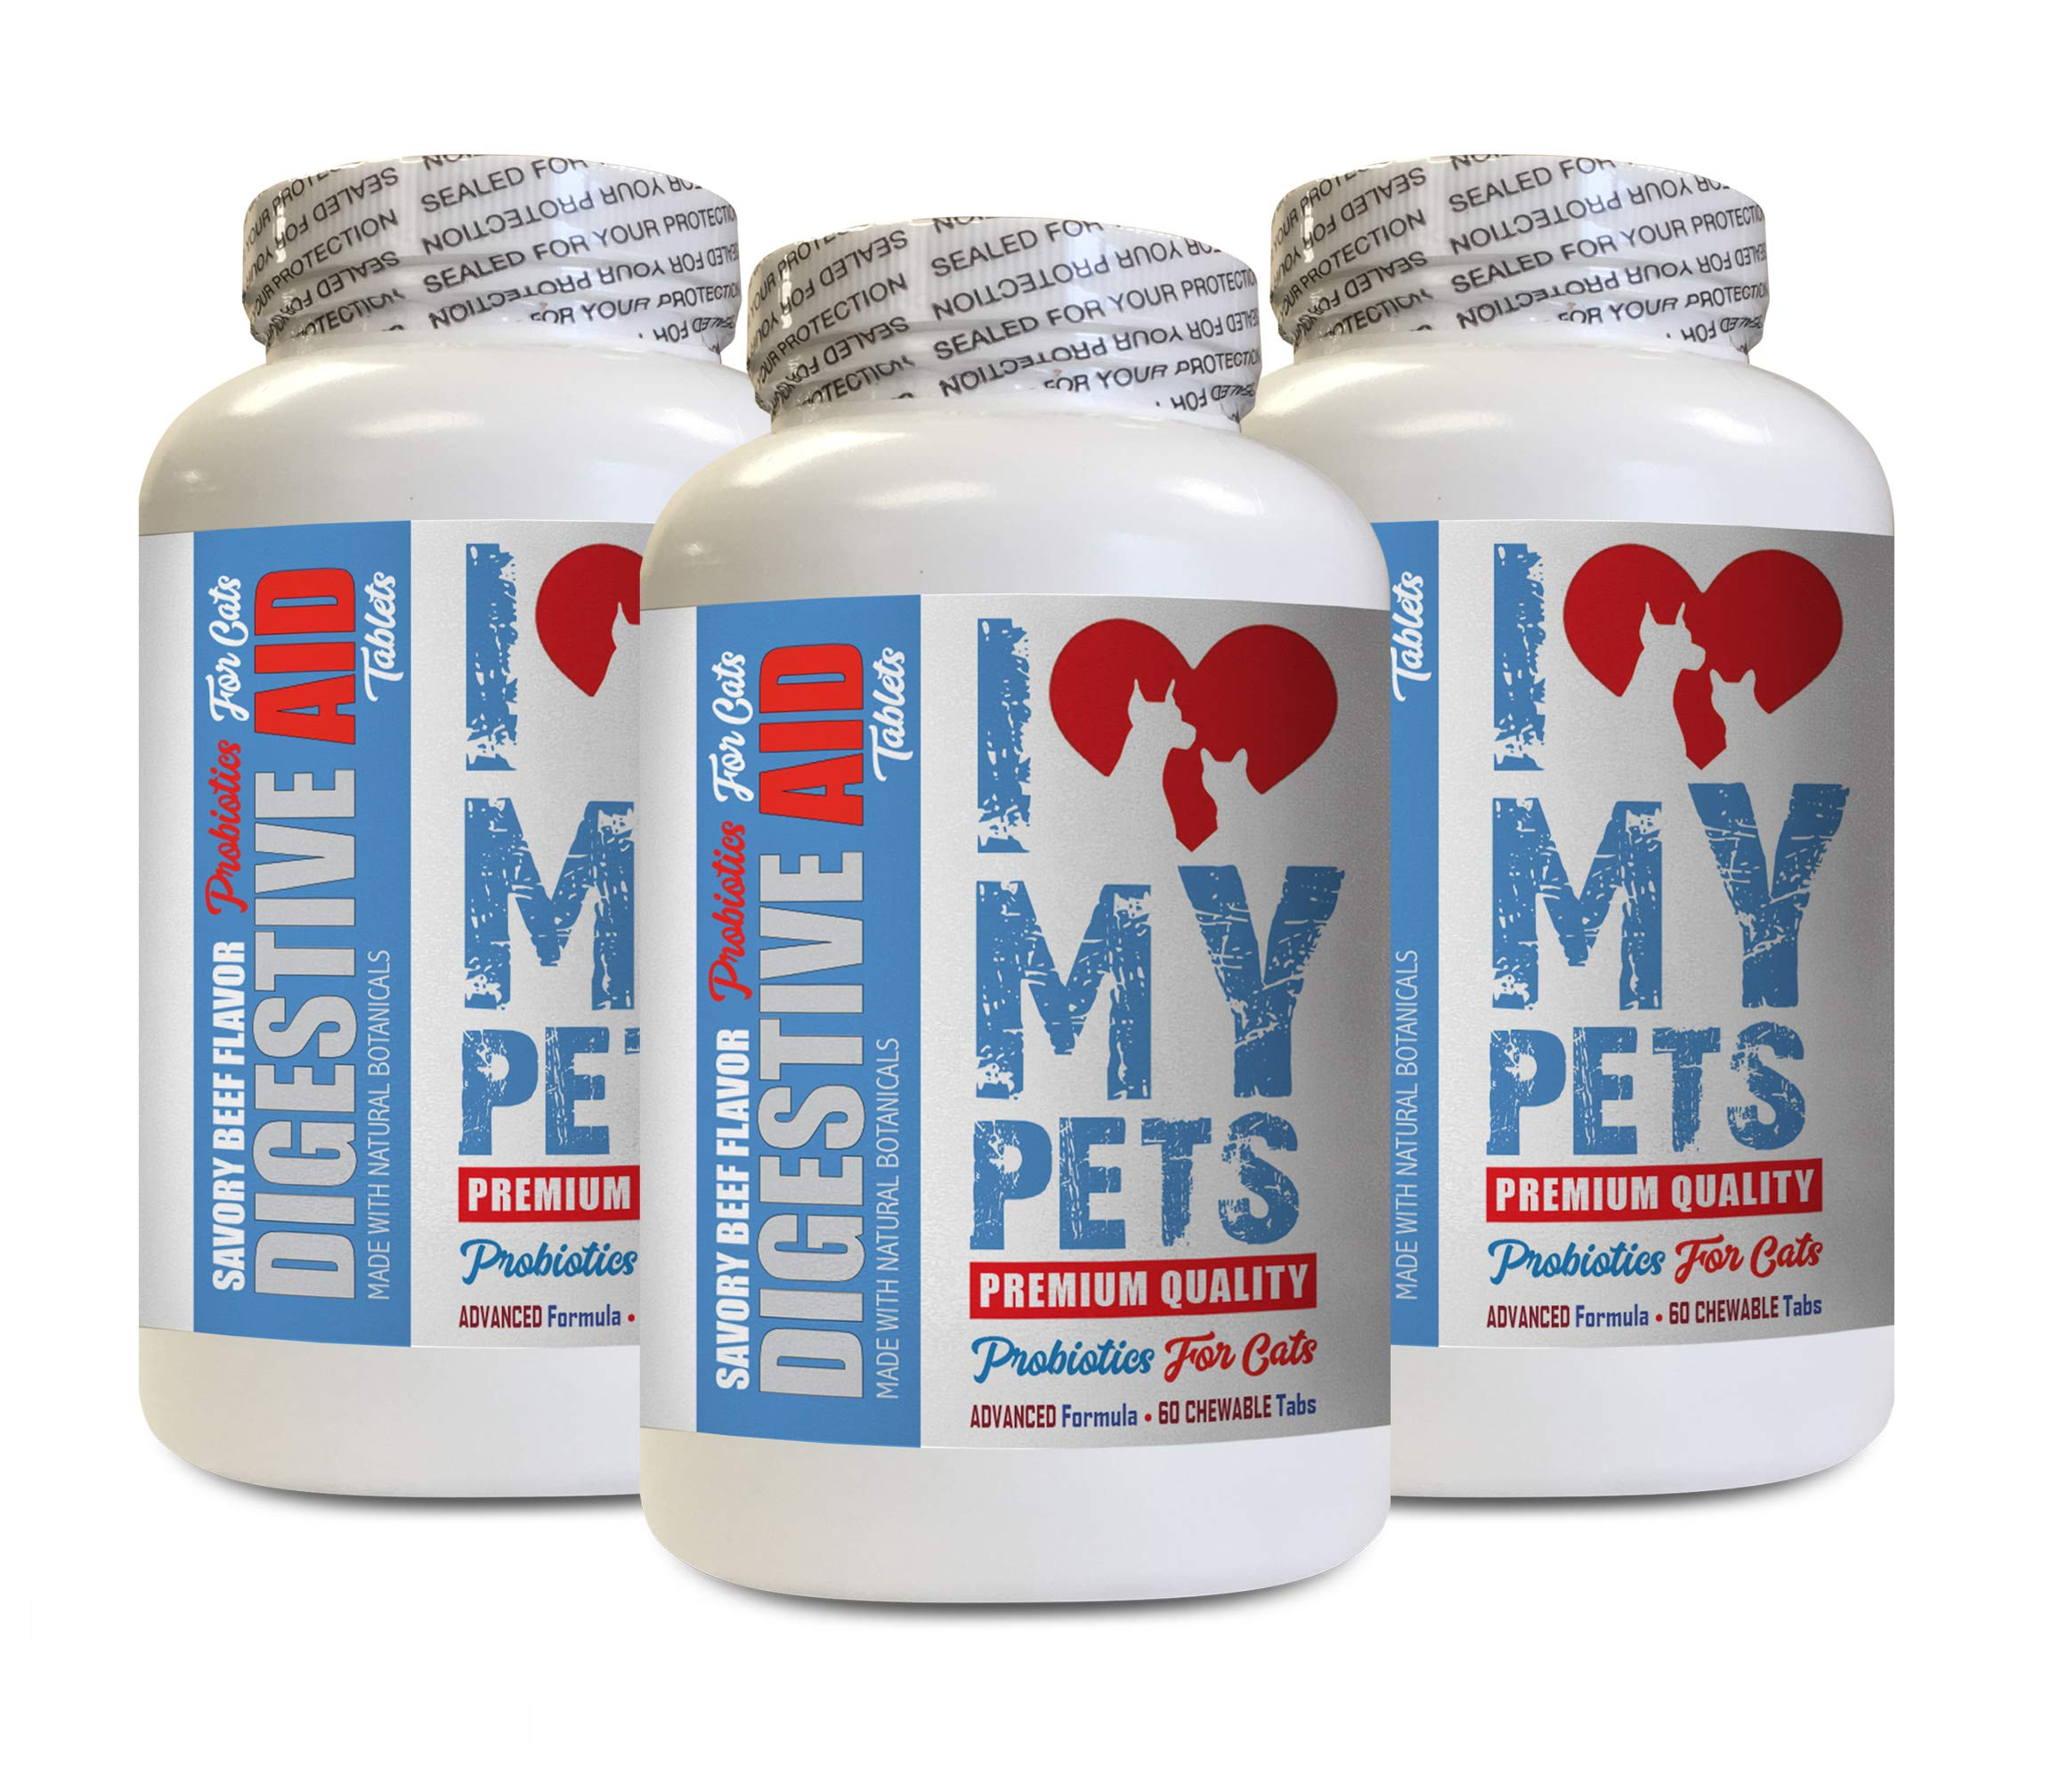 I LOVE MY PETS LLC enzymes for Cats - CAT Digestive AID - Healthy PROBIOTICS - Chews - cat probiotic for Constipation - 180 Treats (3 Bottles) by I LOVE MY PETS LLC